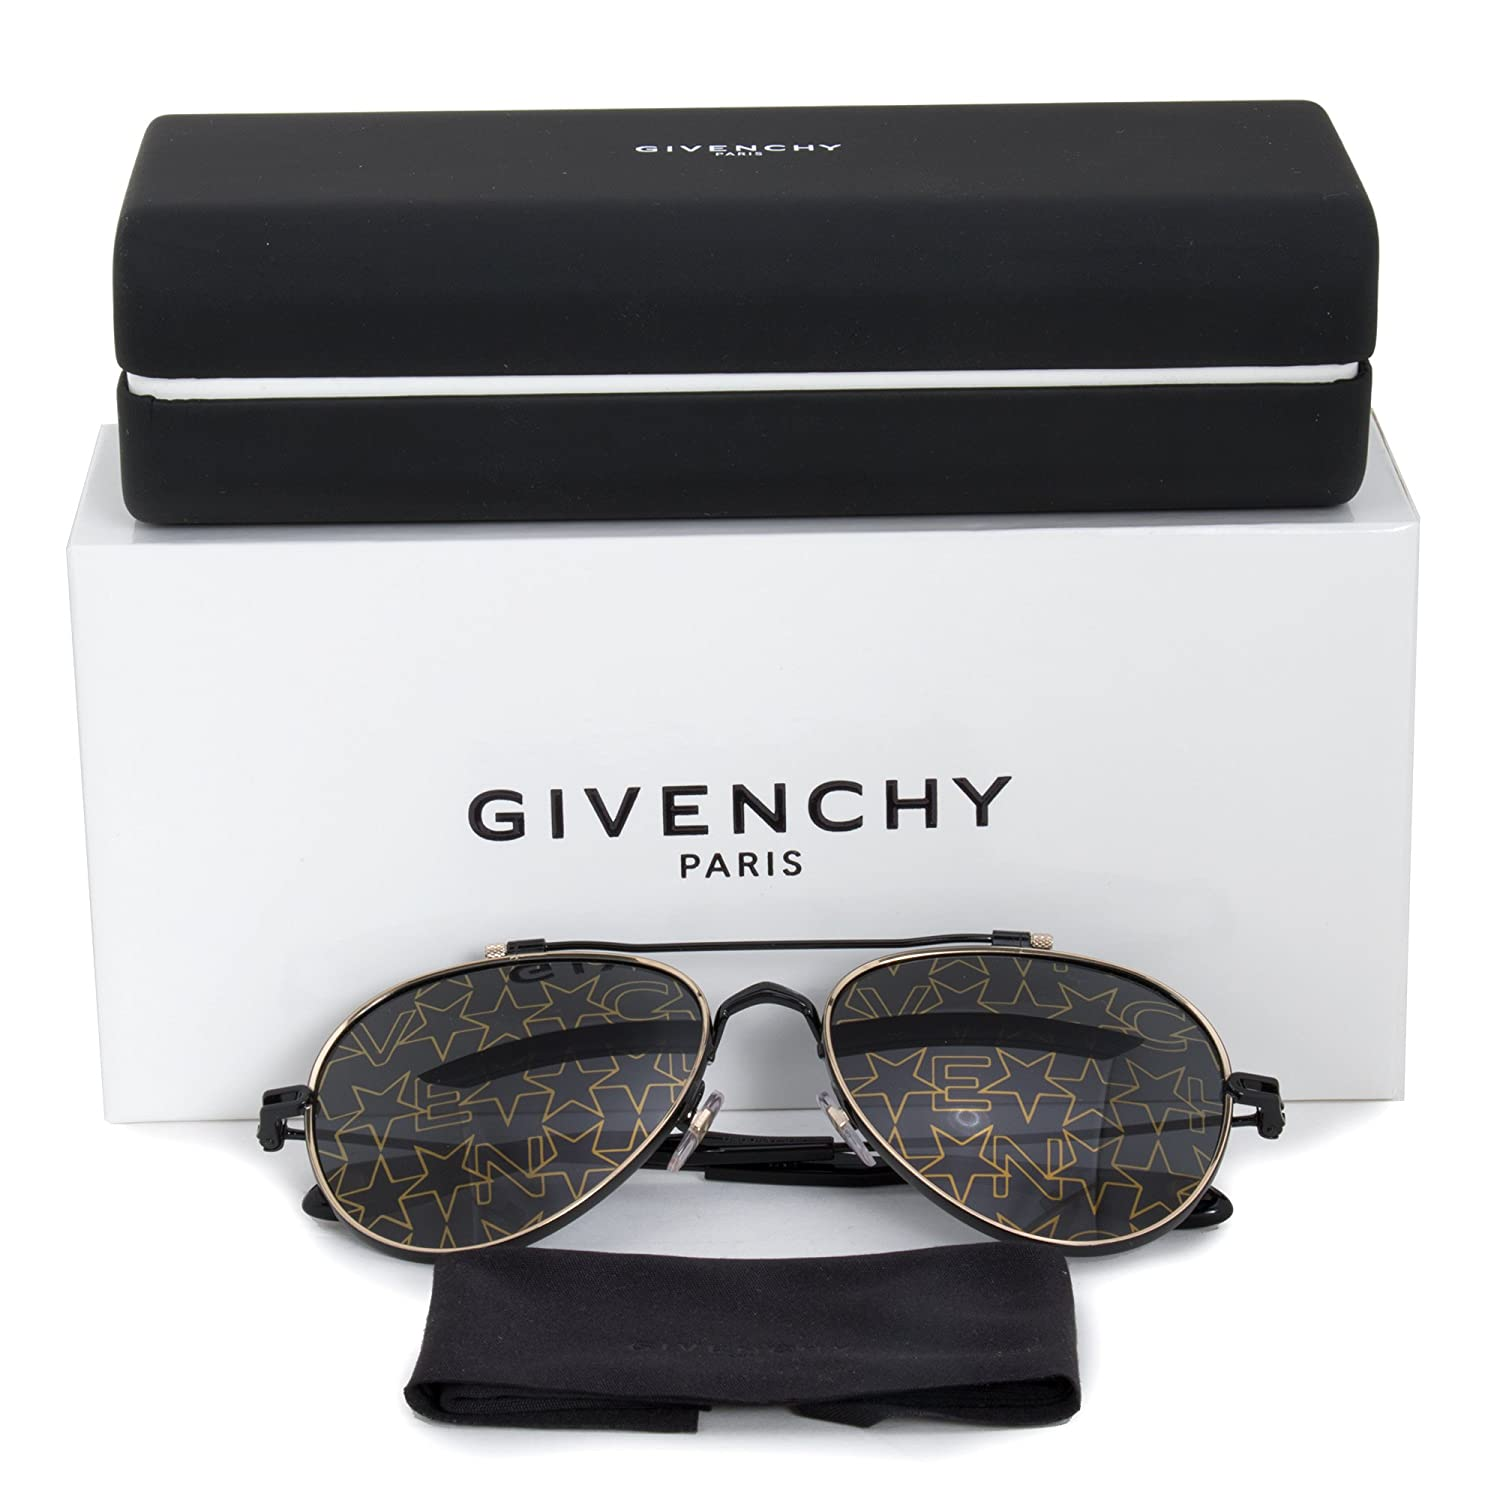 3cd28a6b75667 Amazon.com  Sunglasses Givenchy Gv 7057 S NUDE 02M2 Black Gold 7Y gold  decor lens  Givenchy  Clothing